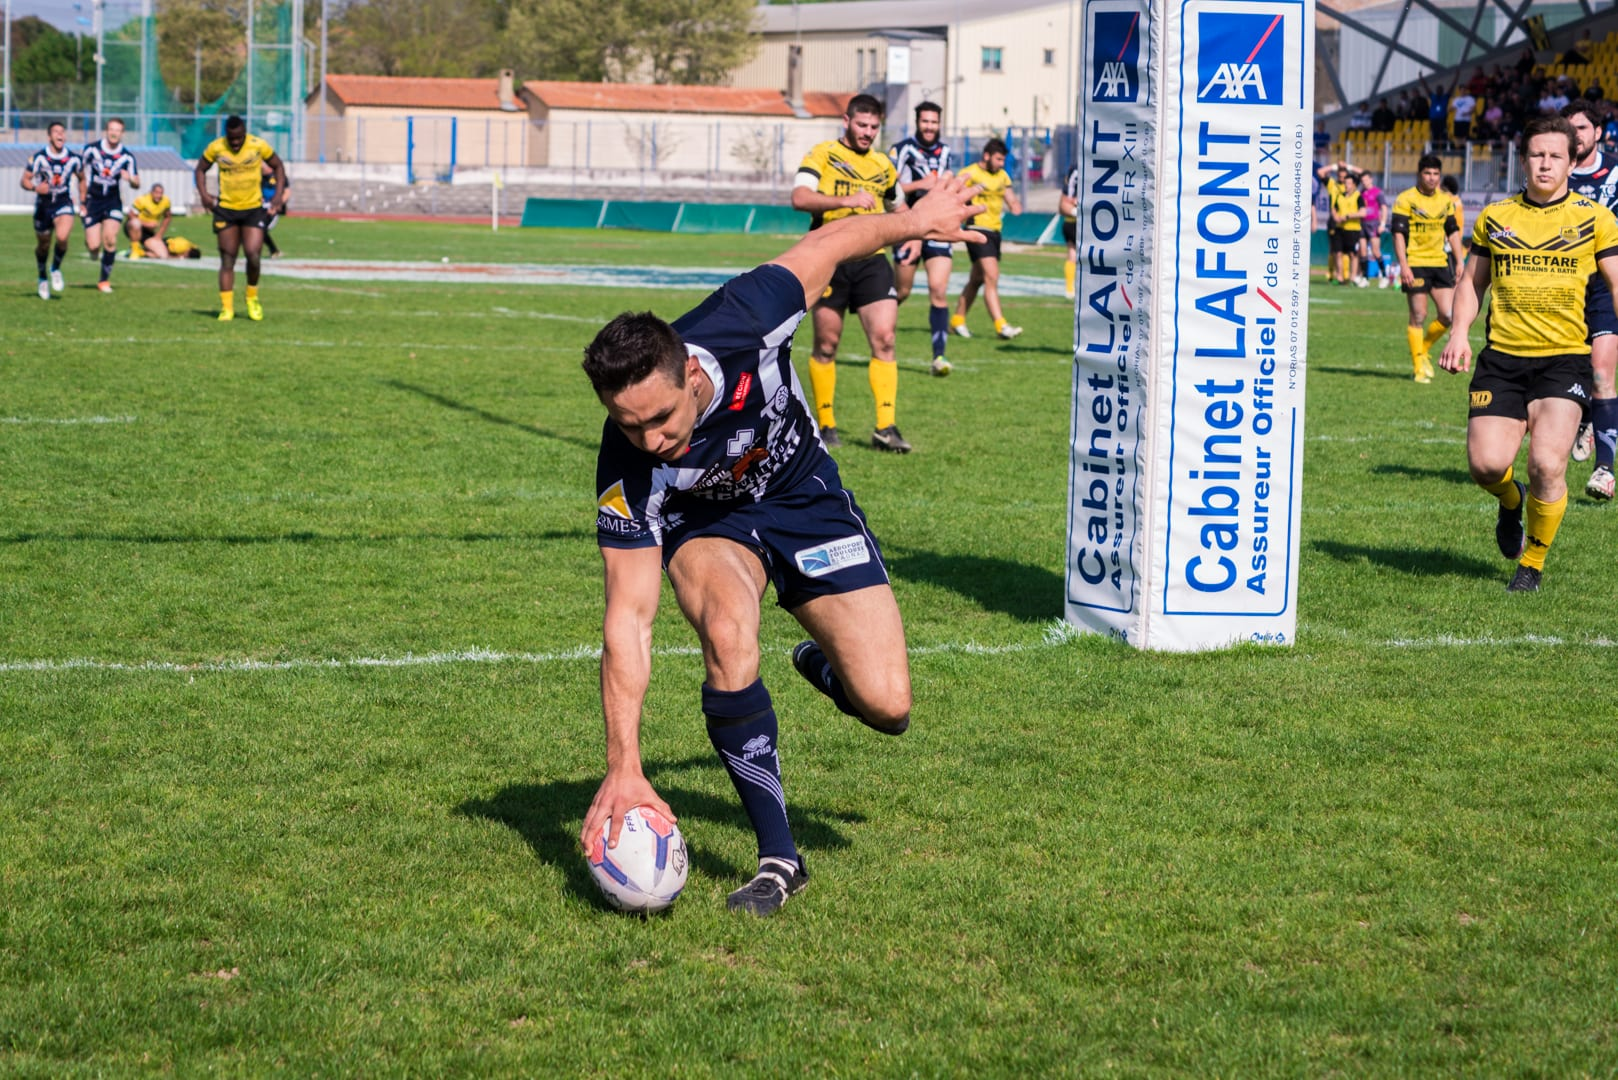 Photo de la finale de la coupe de France de Rugby à XIII : Toulouse - Carcassonne 16